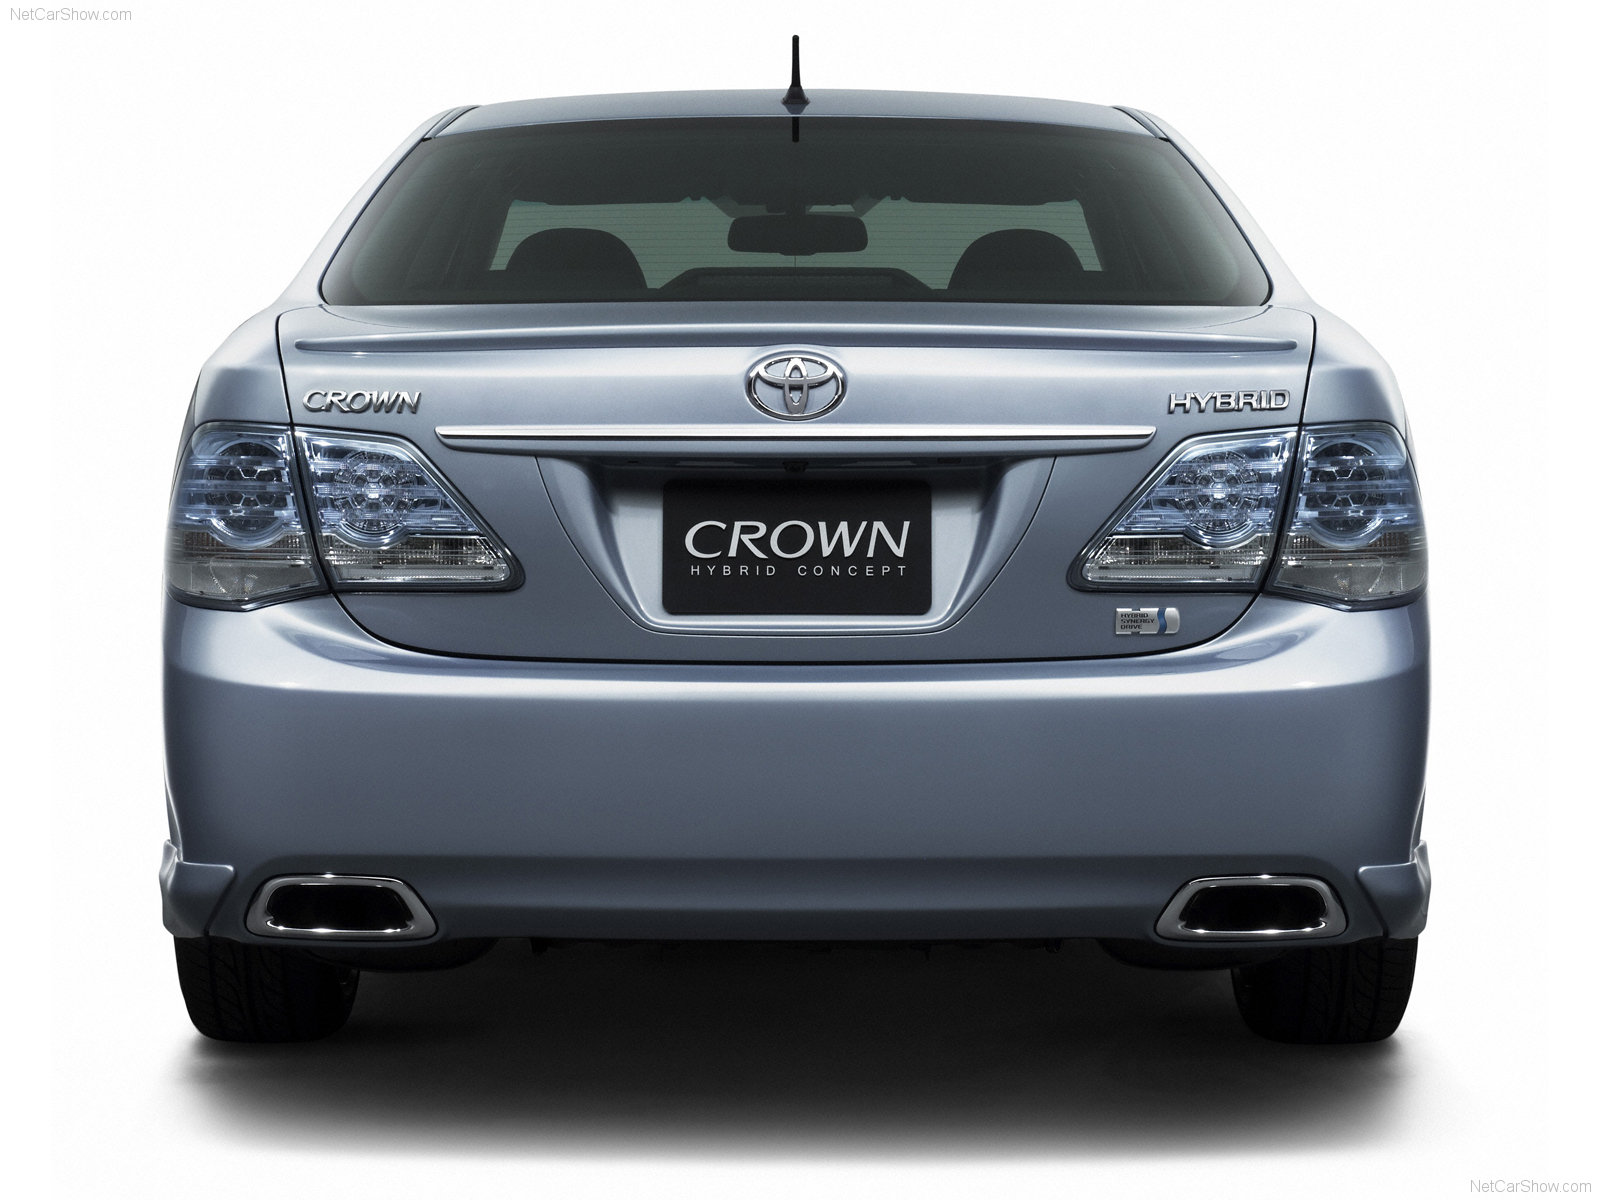 You can vote for this Toyota Crown Hybrid photo